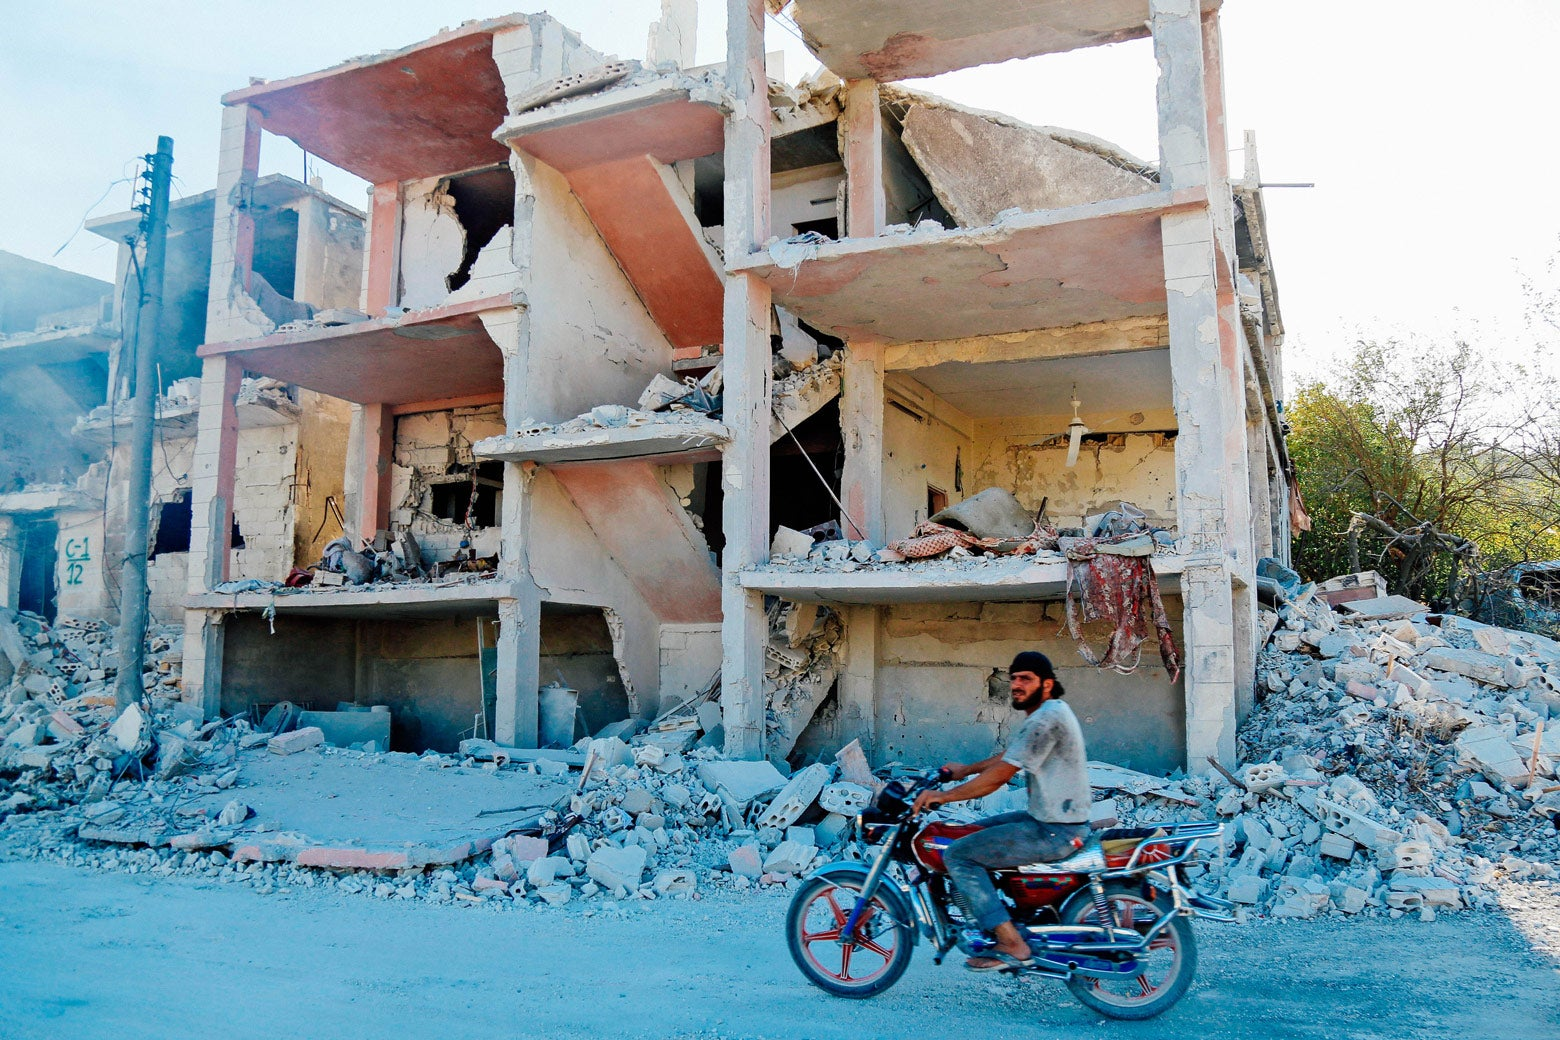 A Syrian man rides a motorcycle past a destroyed building.